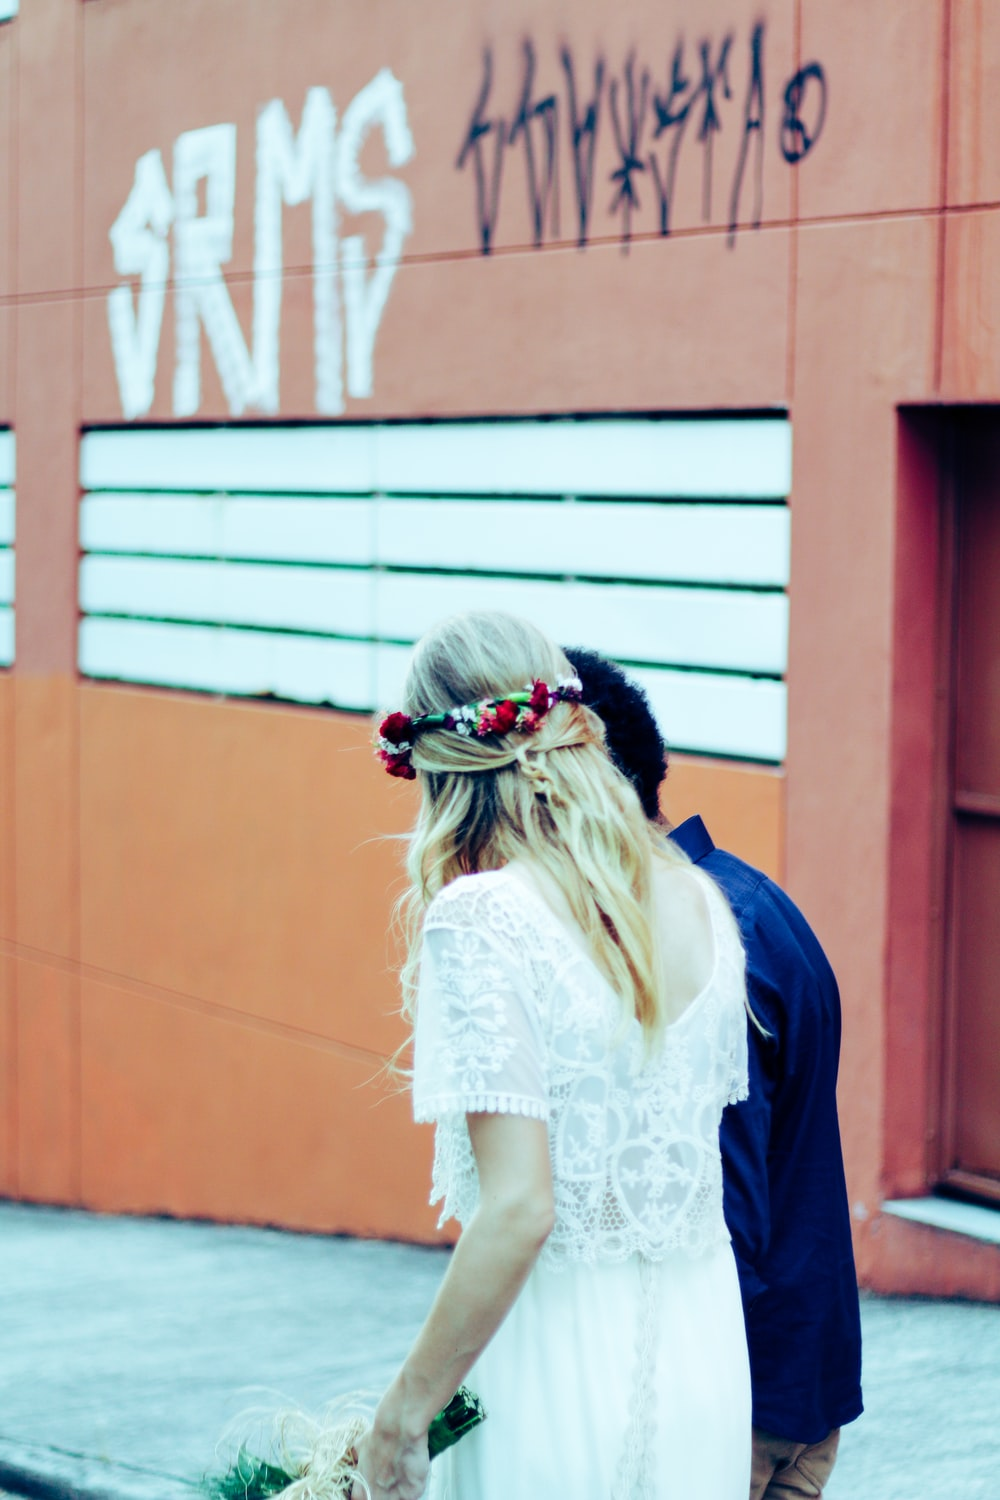 woman and man standing near wall